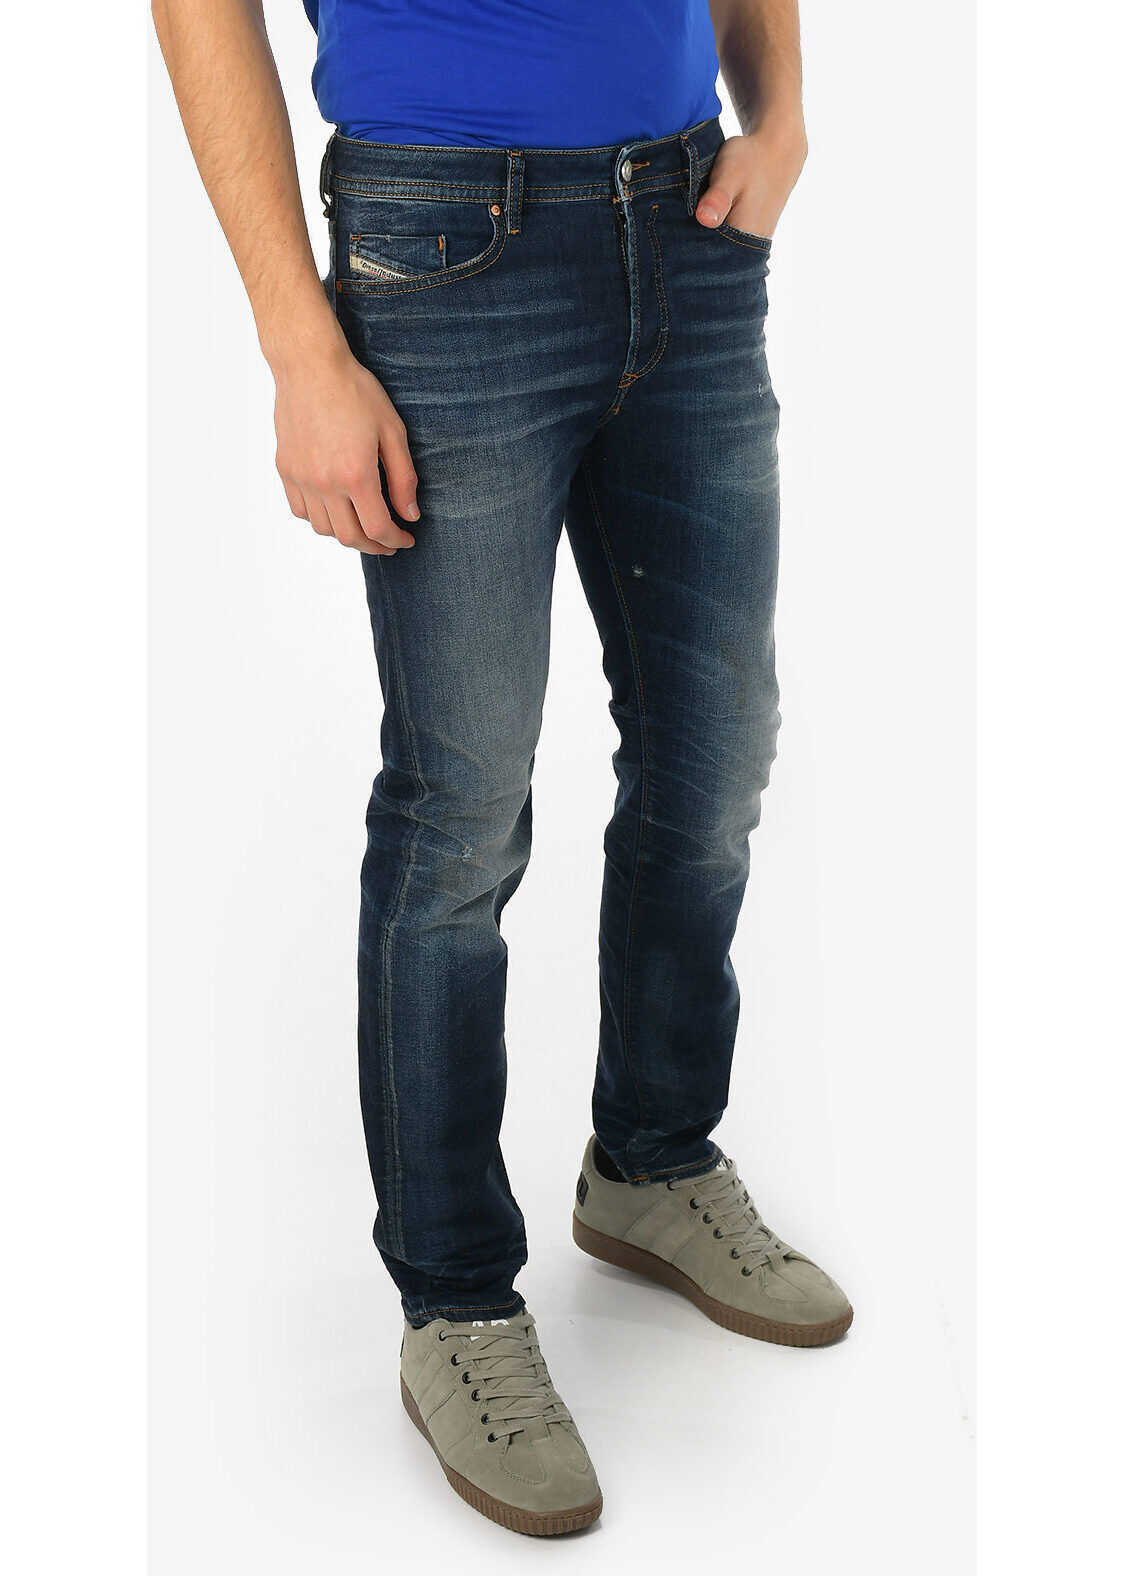 Diesel 17cm Stonewashed BUSTER Slim Fit Jeans L32 BLUE imagine